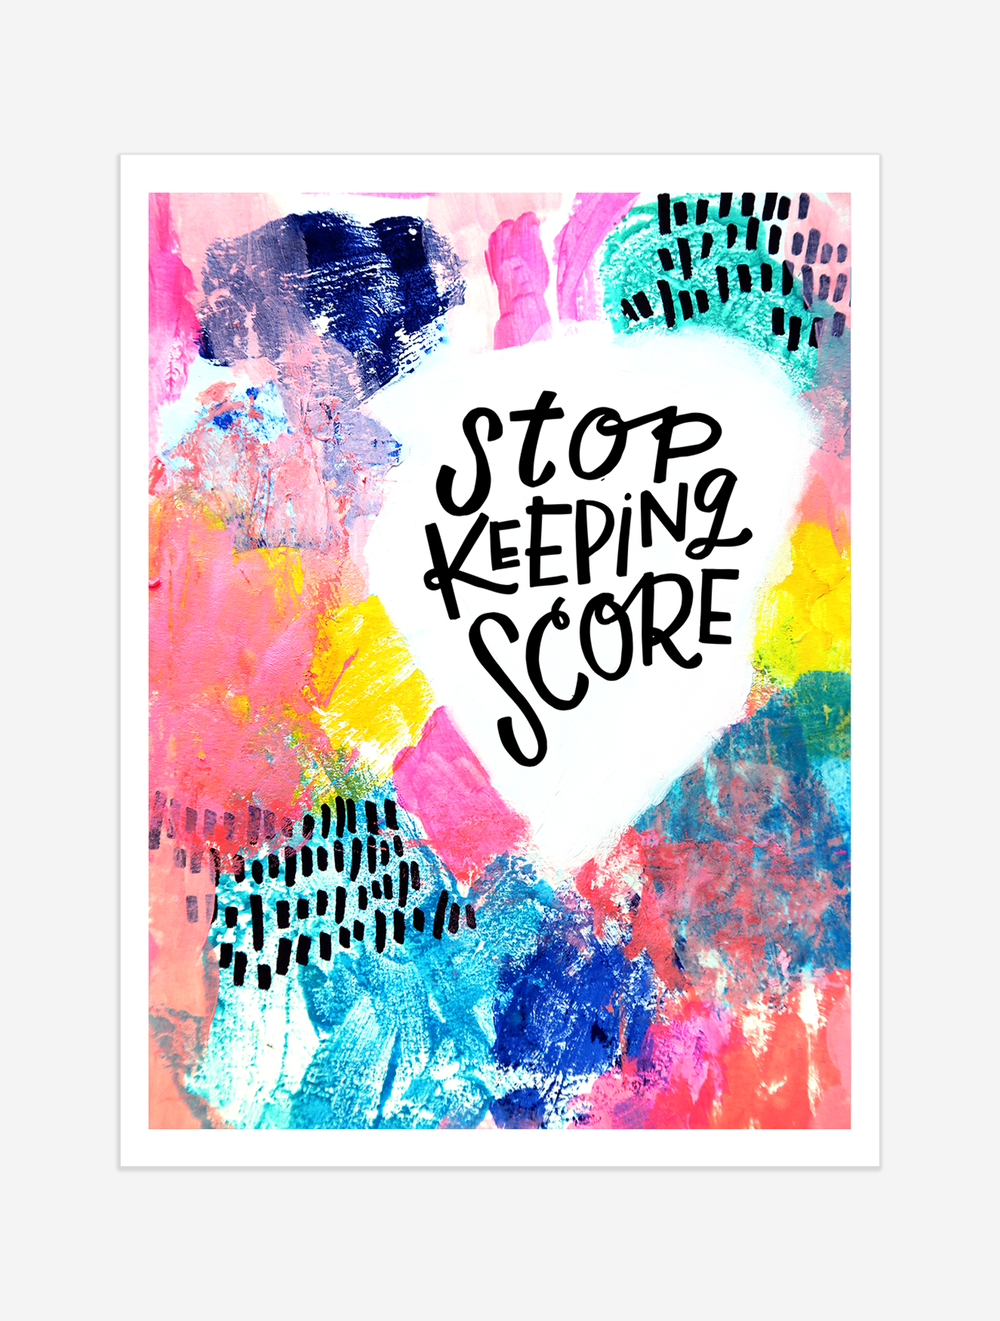 A reminder that keeping score rarely ends in any kind of victory. $25 giclee print available at the Made Vibrant Art Shop.